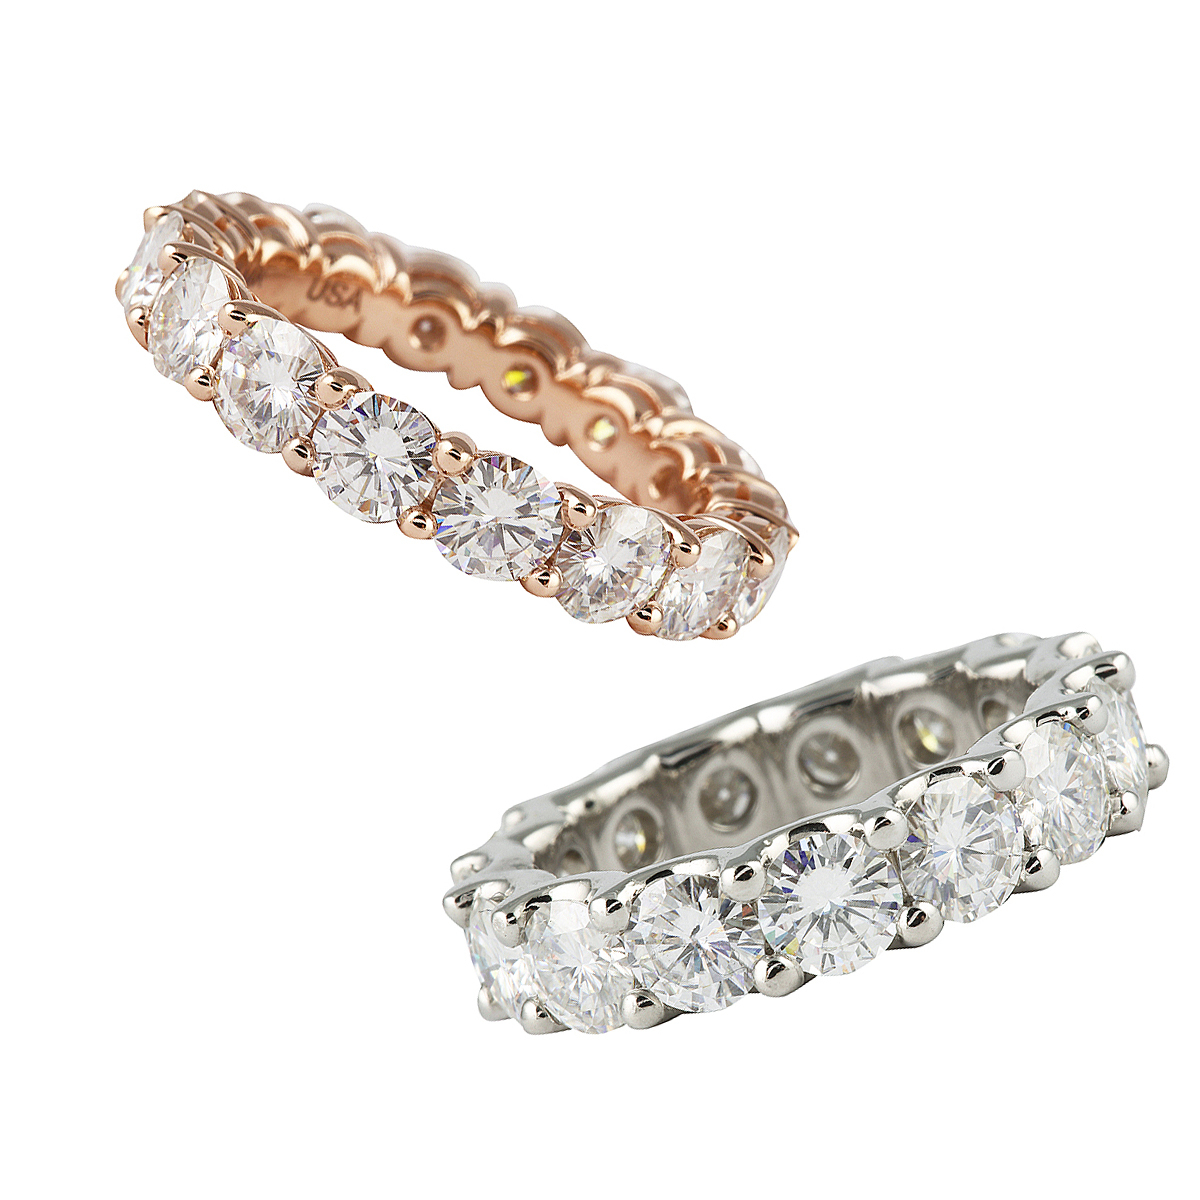 Introducing Moissanite Eternity Bands | Jewelry Blog Regarding Recent Diamond Five Stone Triple Row Anniversary Bands In White Gold (View 16 of 25)